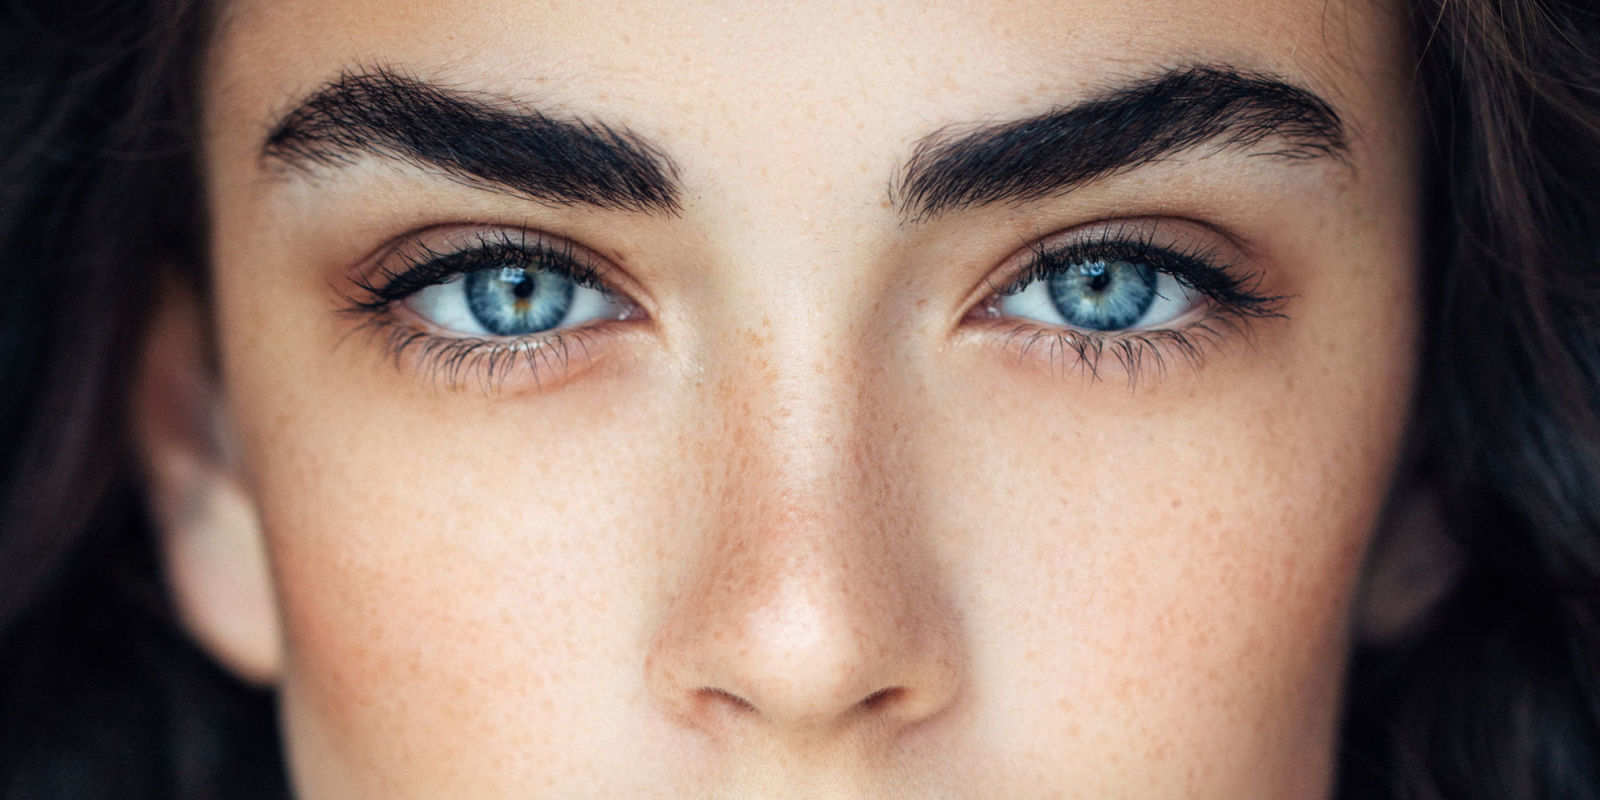 Different eye shapes and how they define your face and personality - Triangular Eyebrows With A Sharp And Angular Shape Defines Your Personality As An Entertaining And An Inspiring Person You Tend To Take Wiser Decisions And